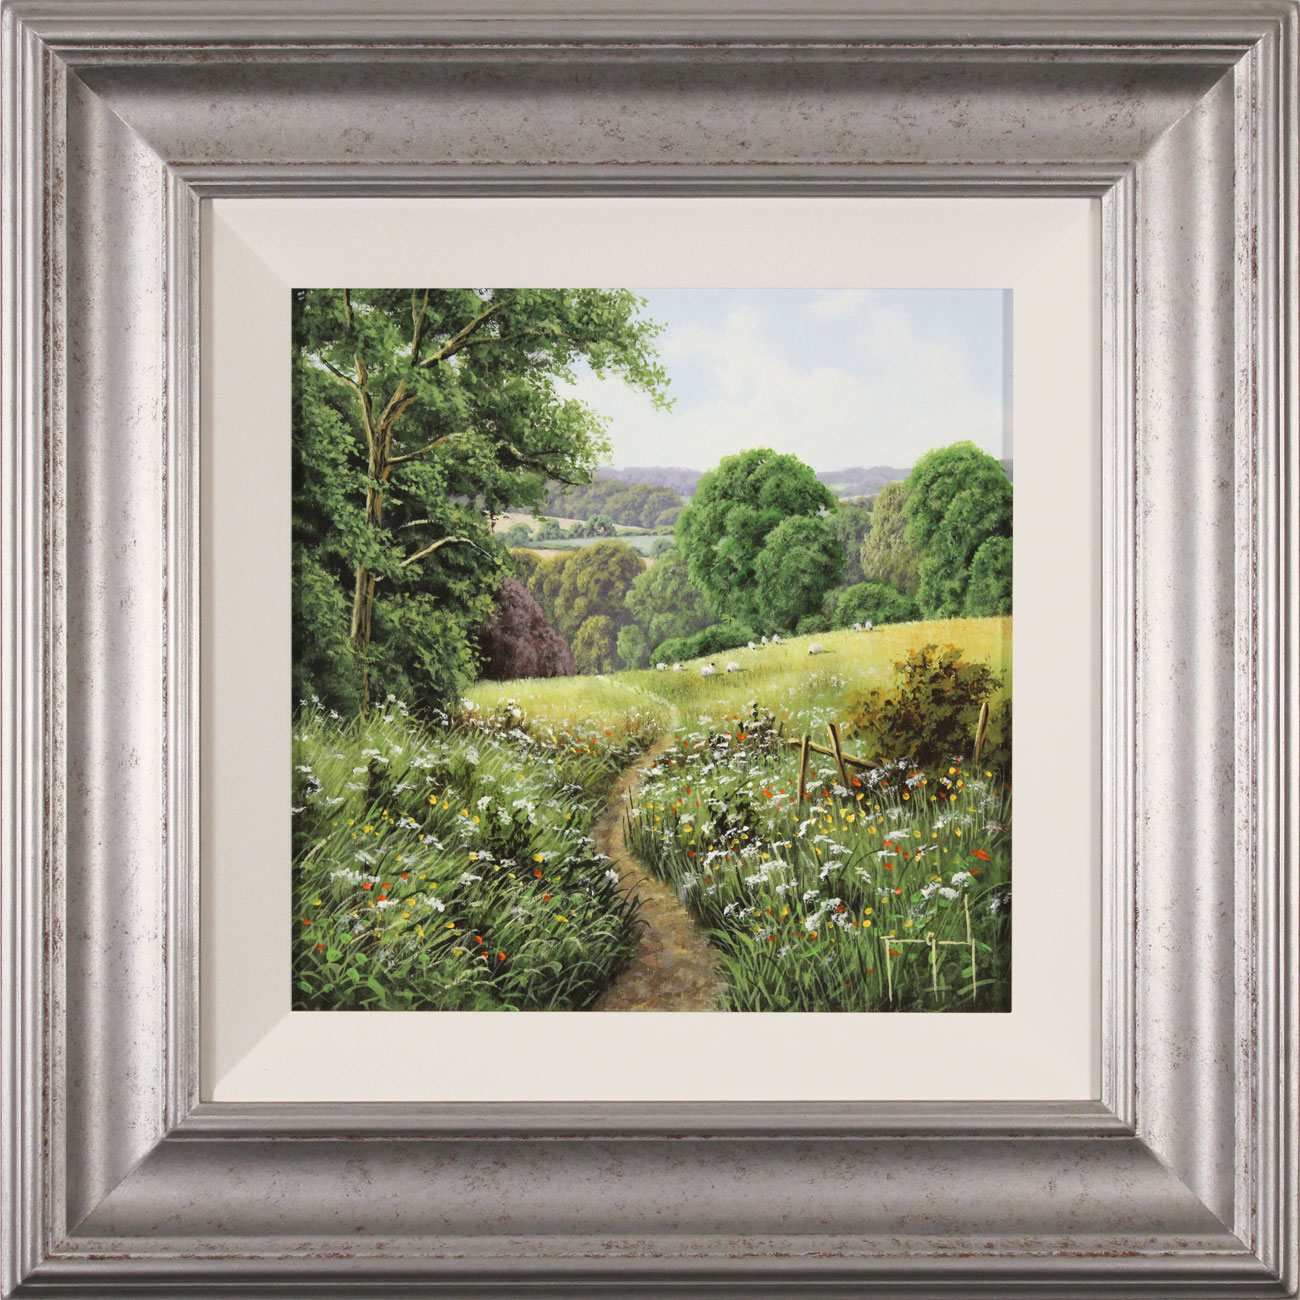 Terry Grundy, Original oil painting on panel, Passage of Meadowsweet  Click to enlarge